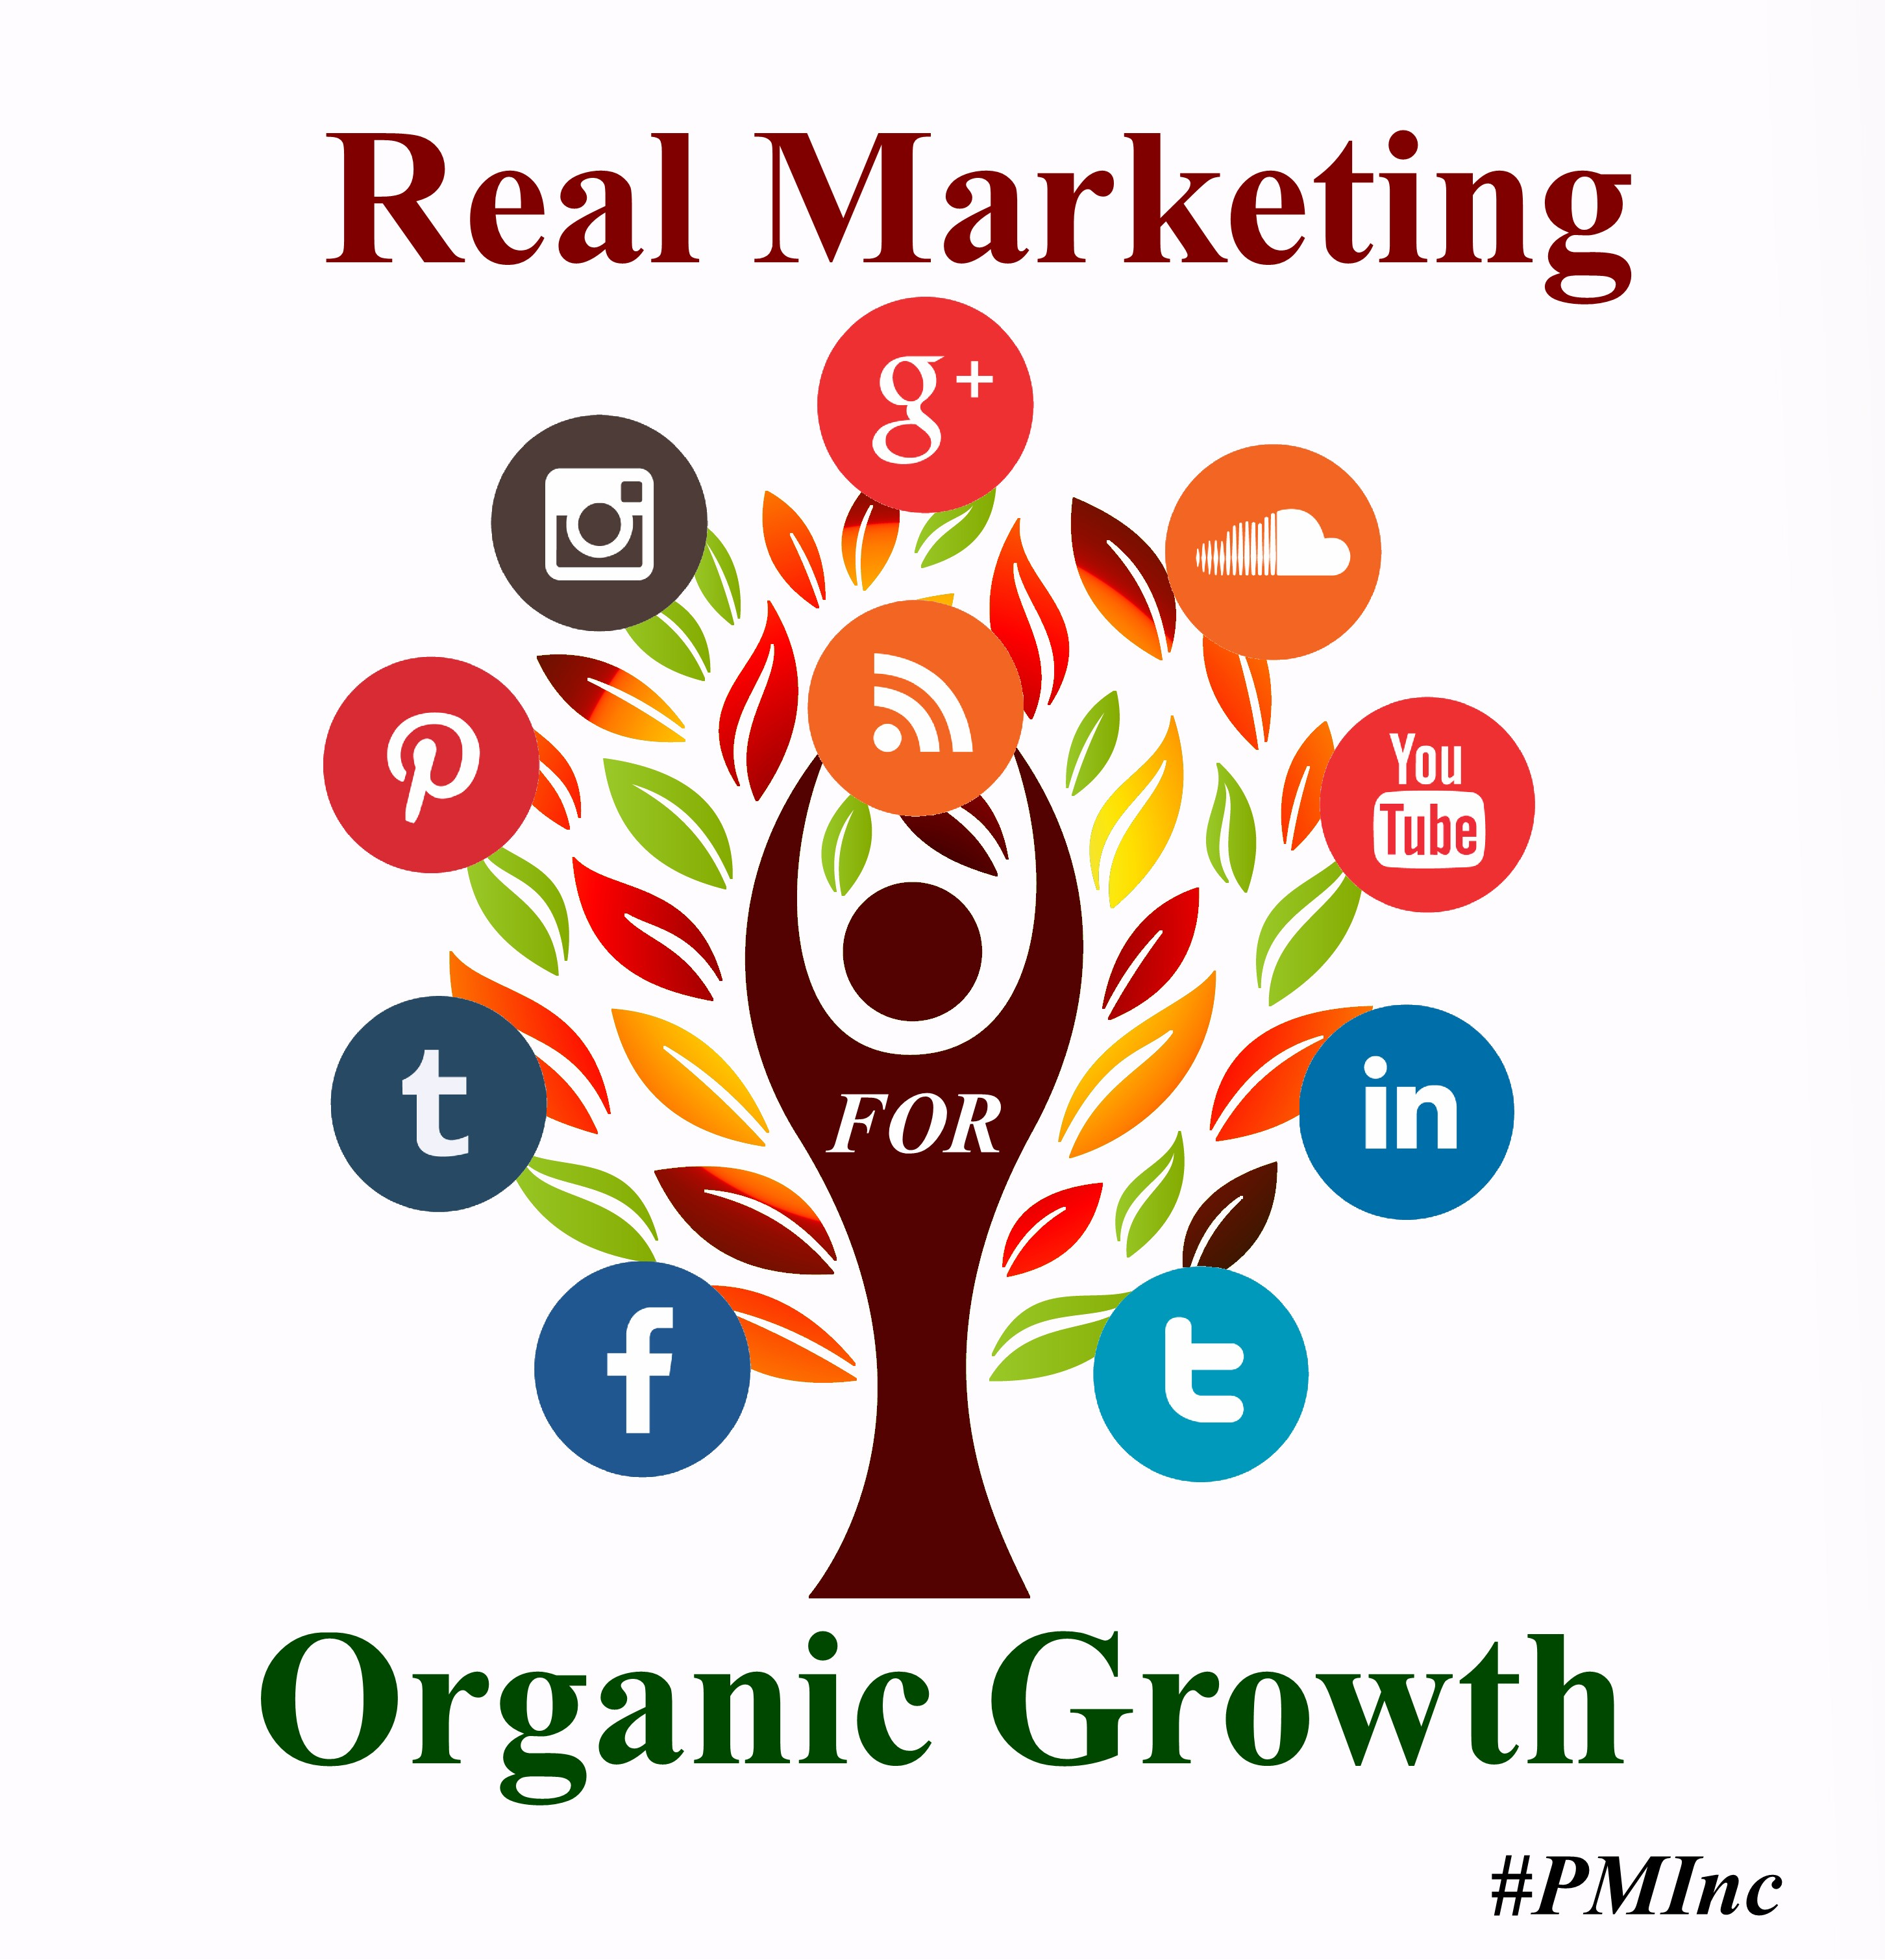 Real Marketing Organic Growth, #PMInc #Marketing #OrganicGrowth